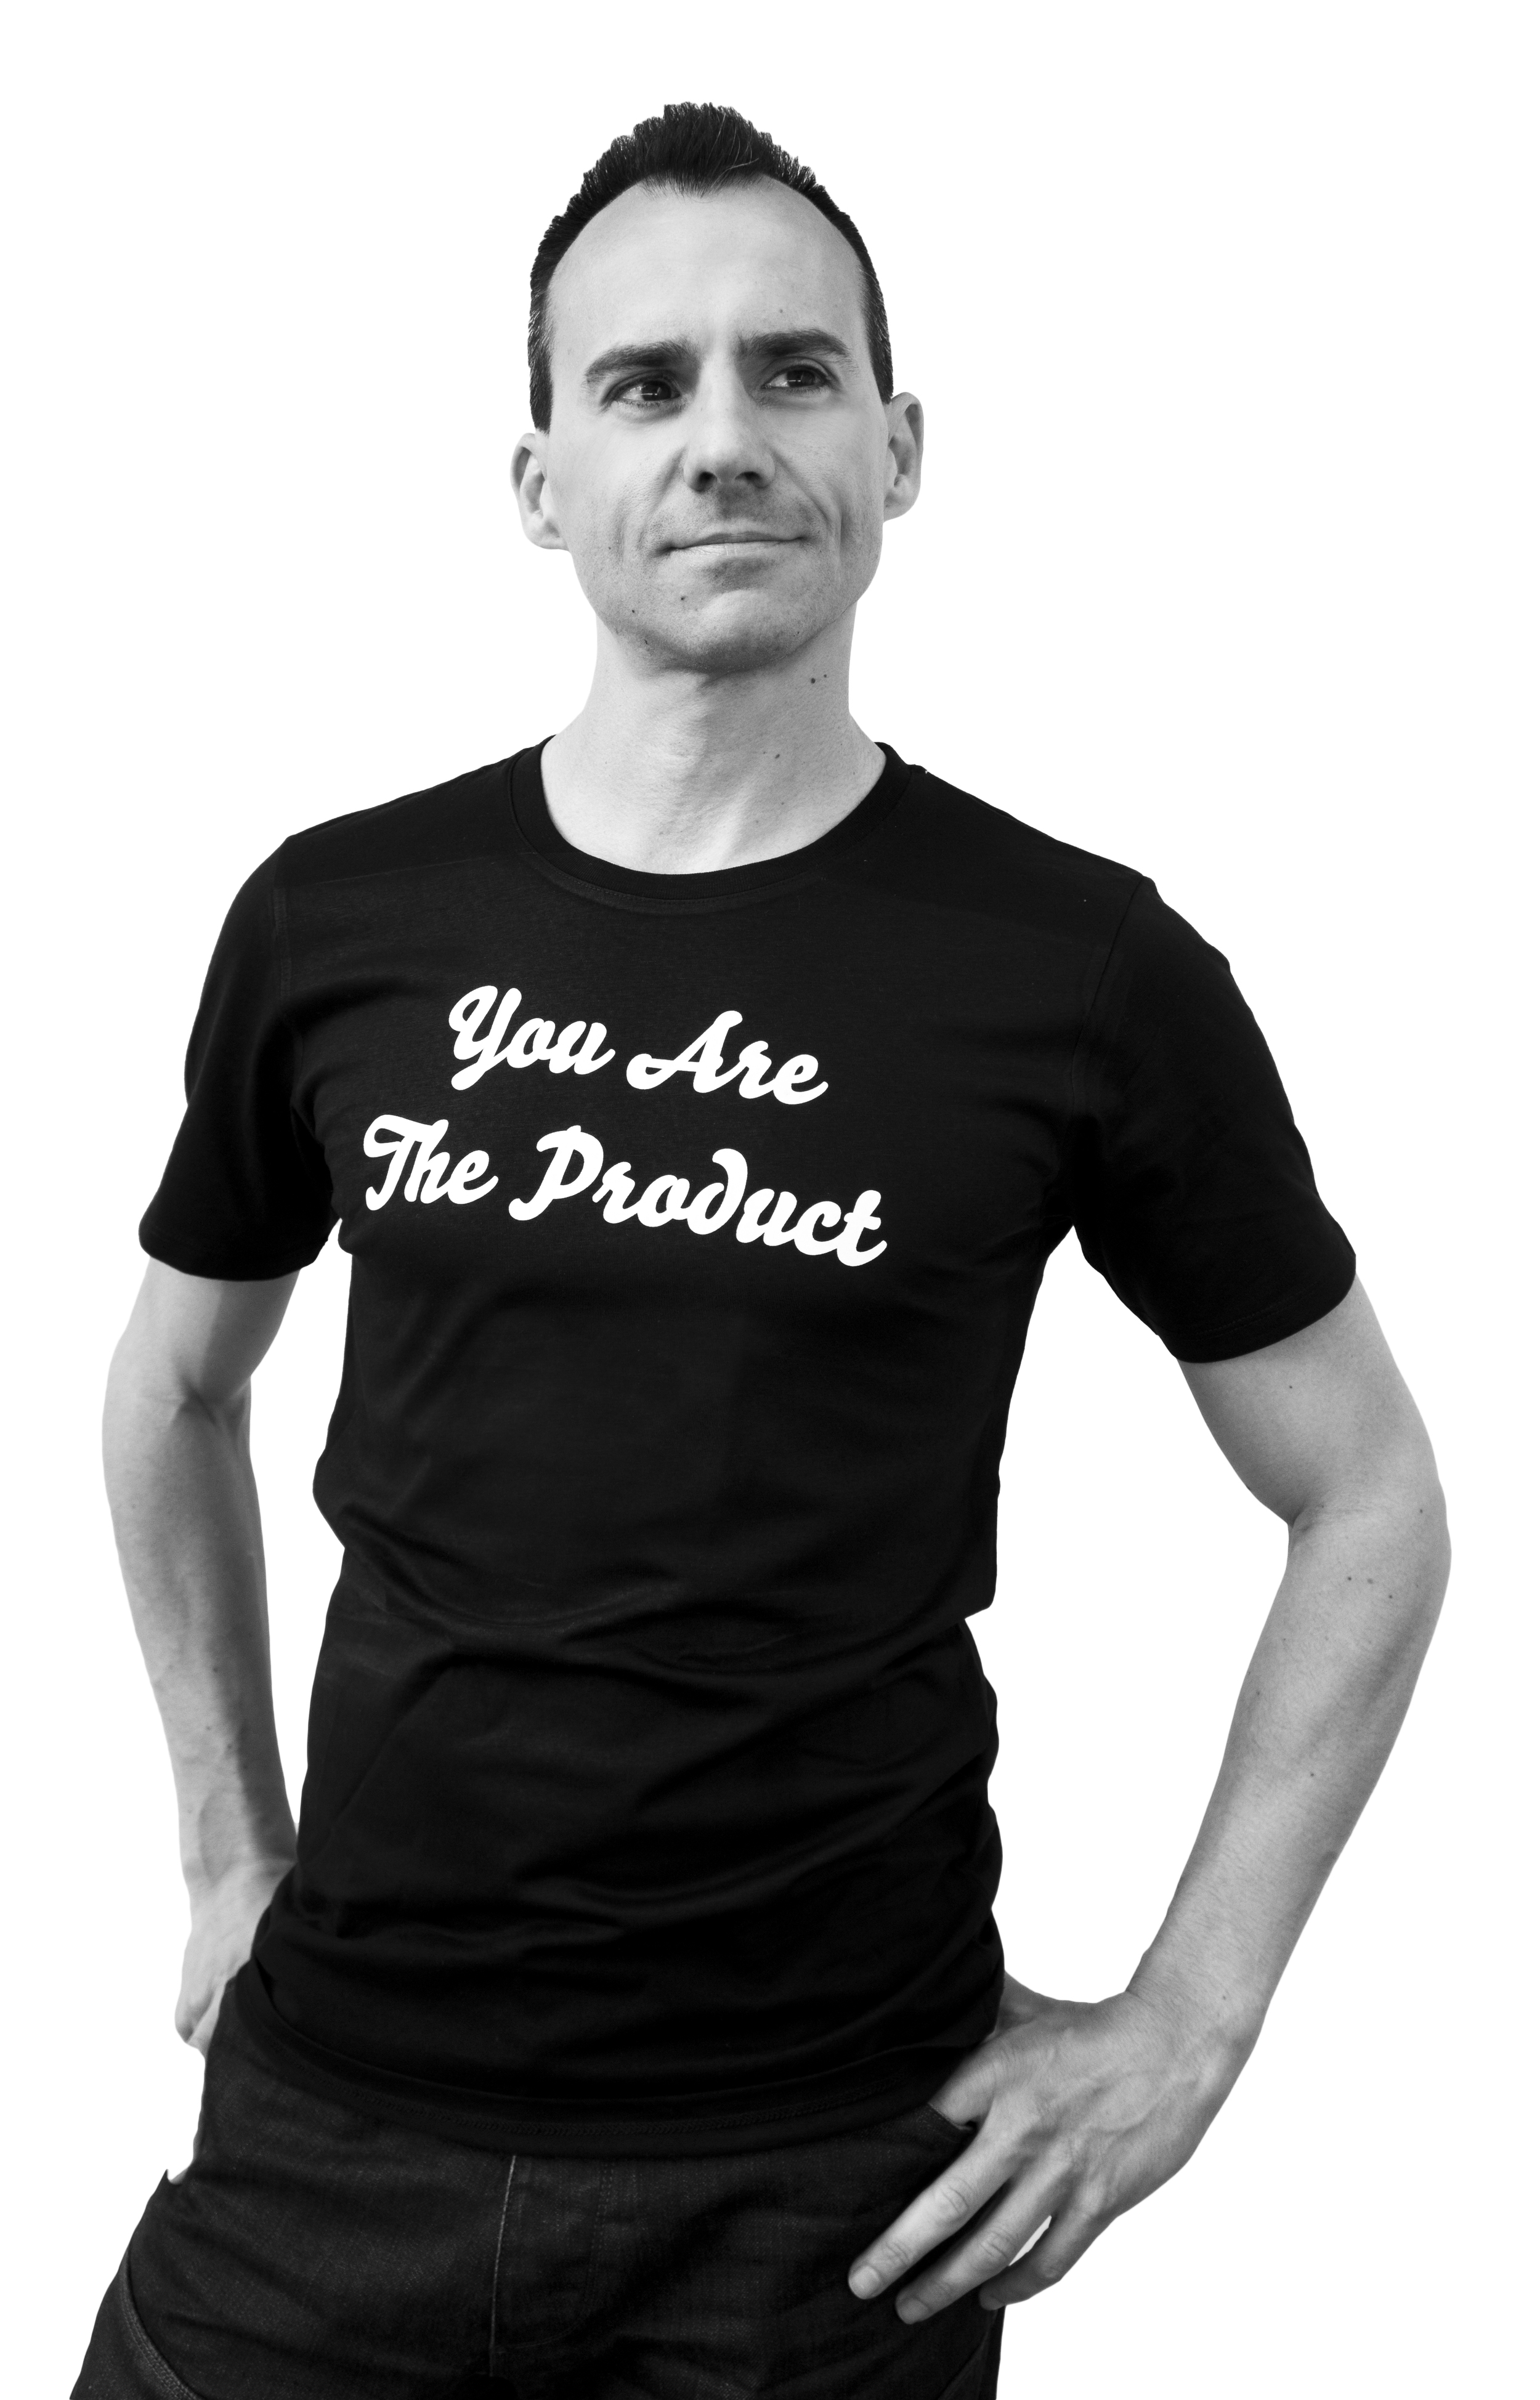 Matteo Bittanti: You Are The Product